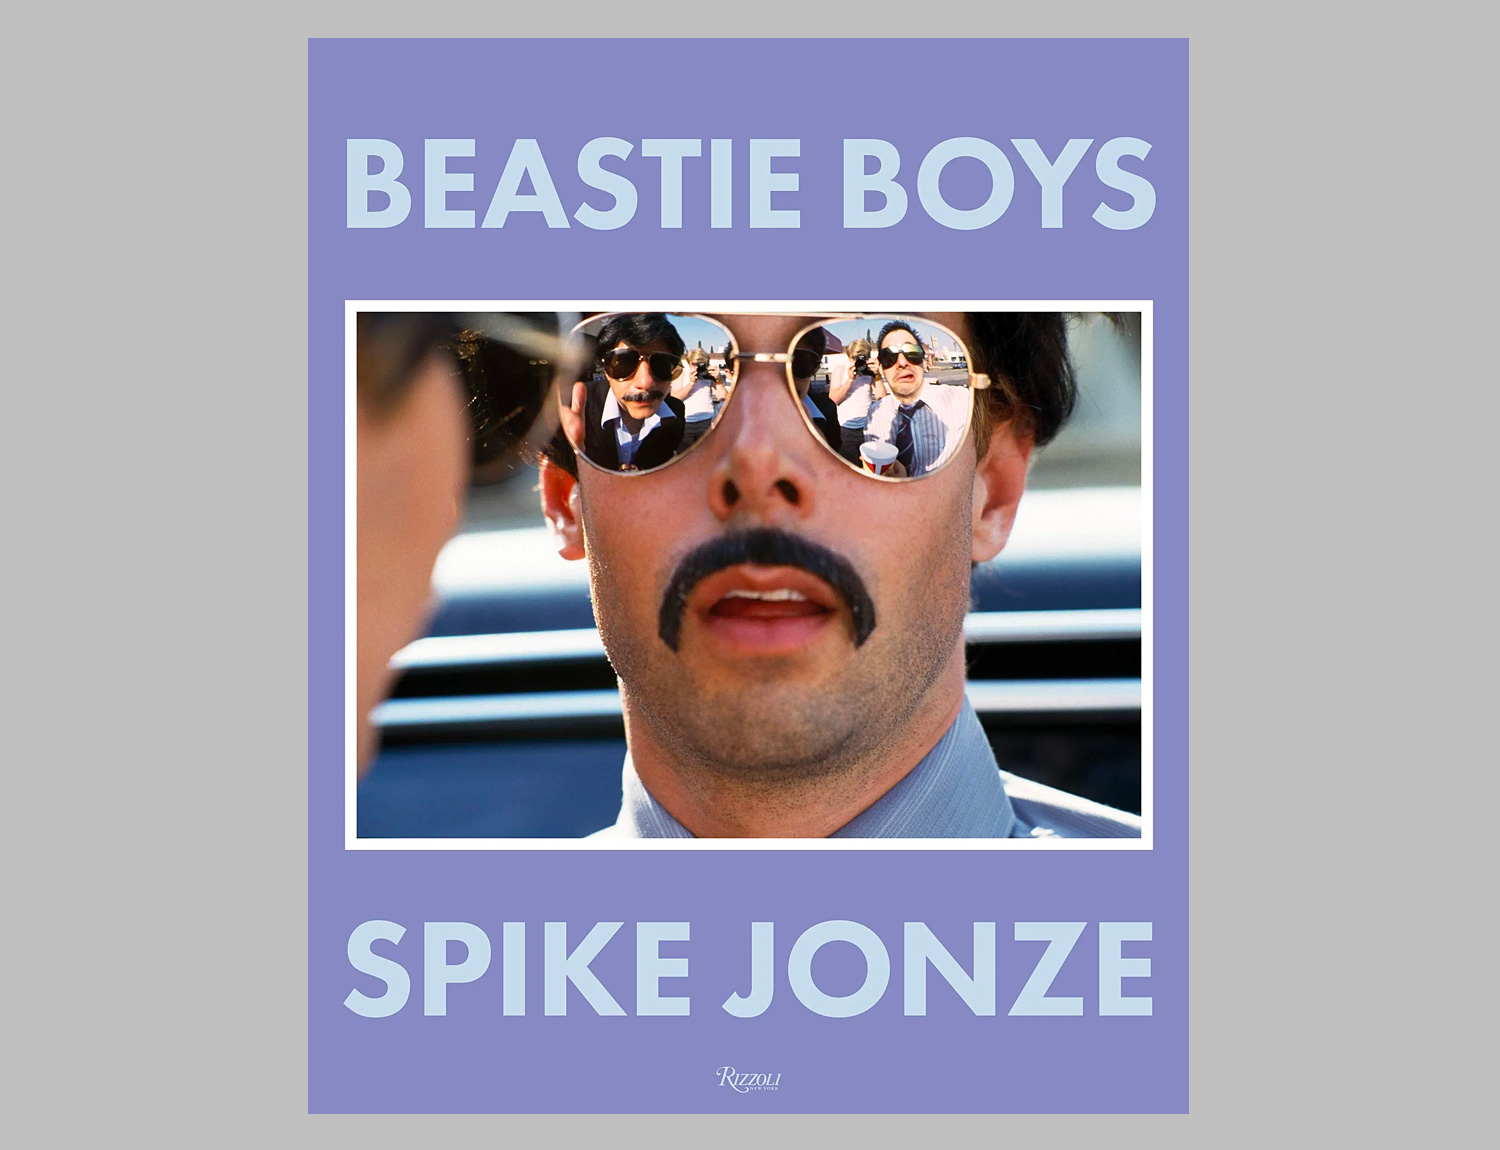 Spike Jonze's Beastie Boys Book is the Famed Director's First at werd.com